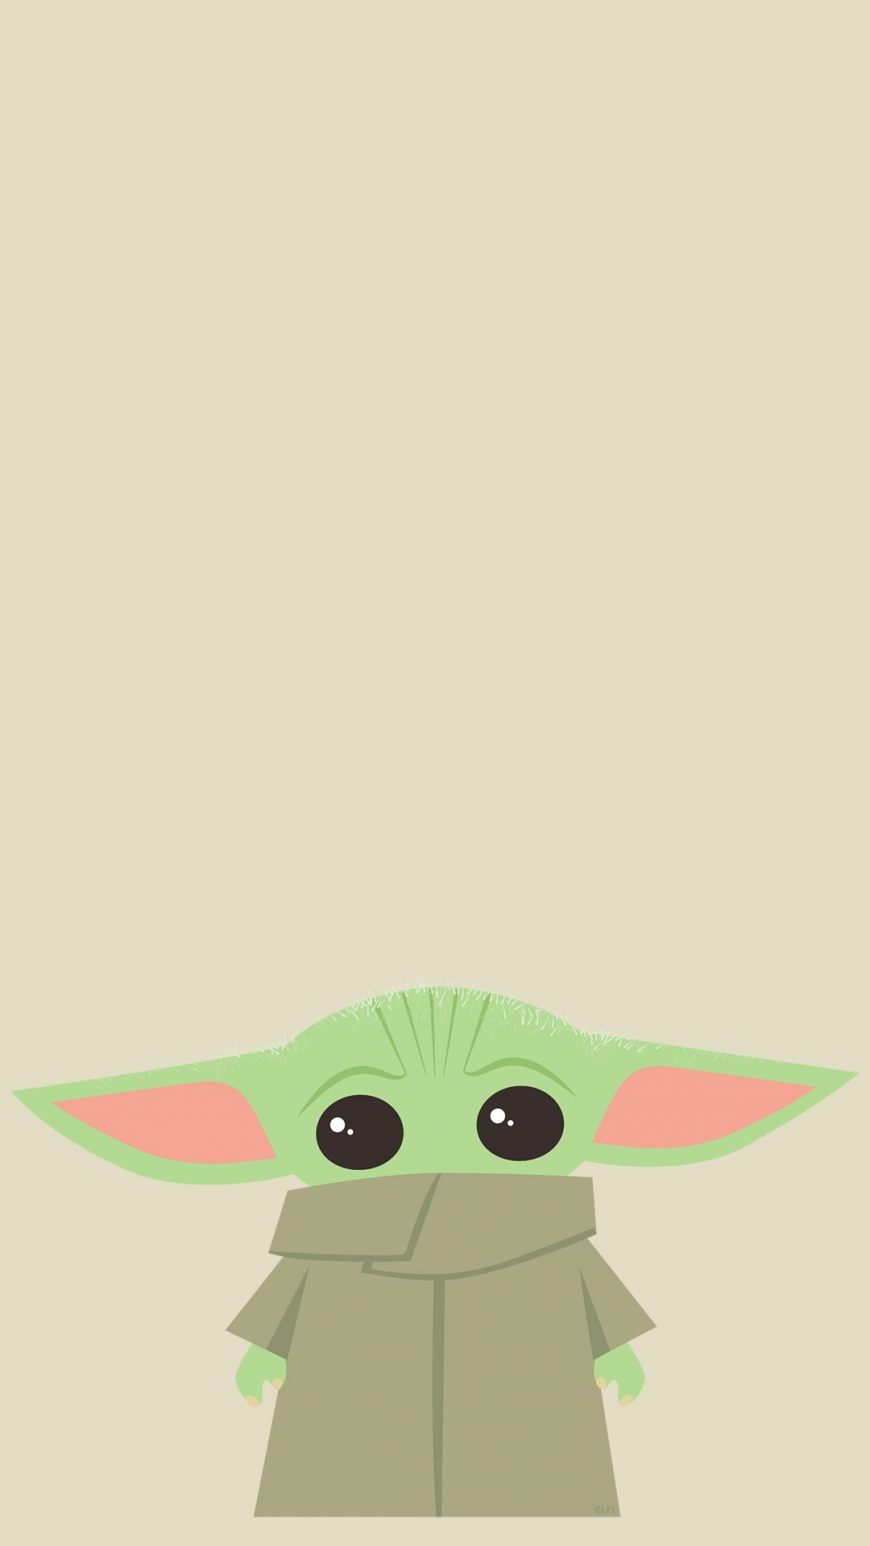 Cute Baby Yoda wallpaper